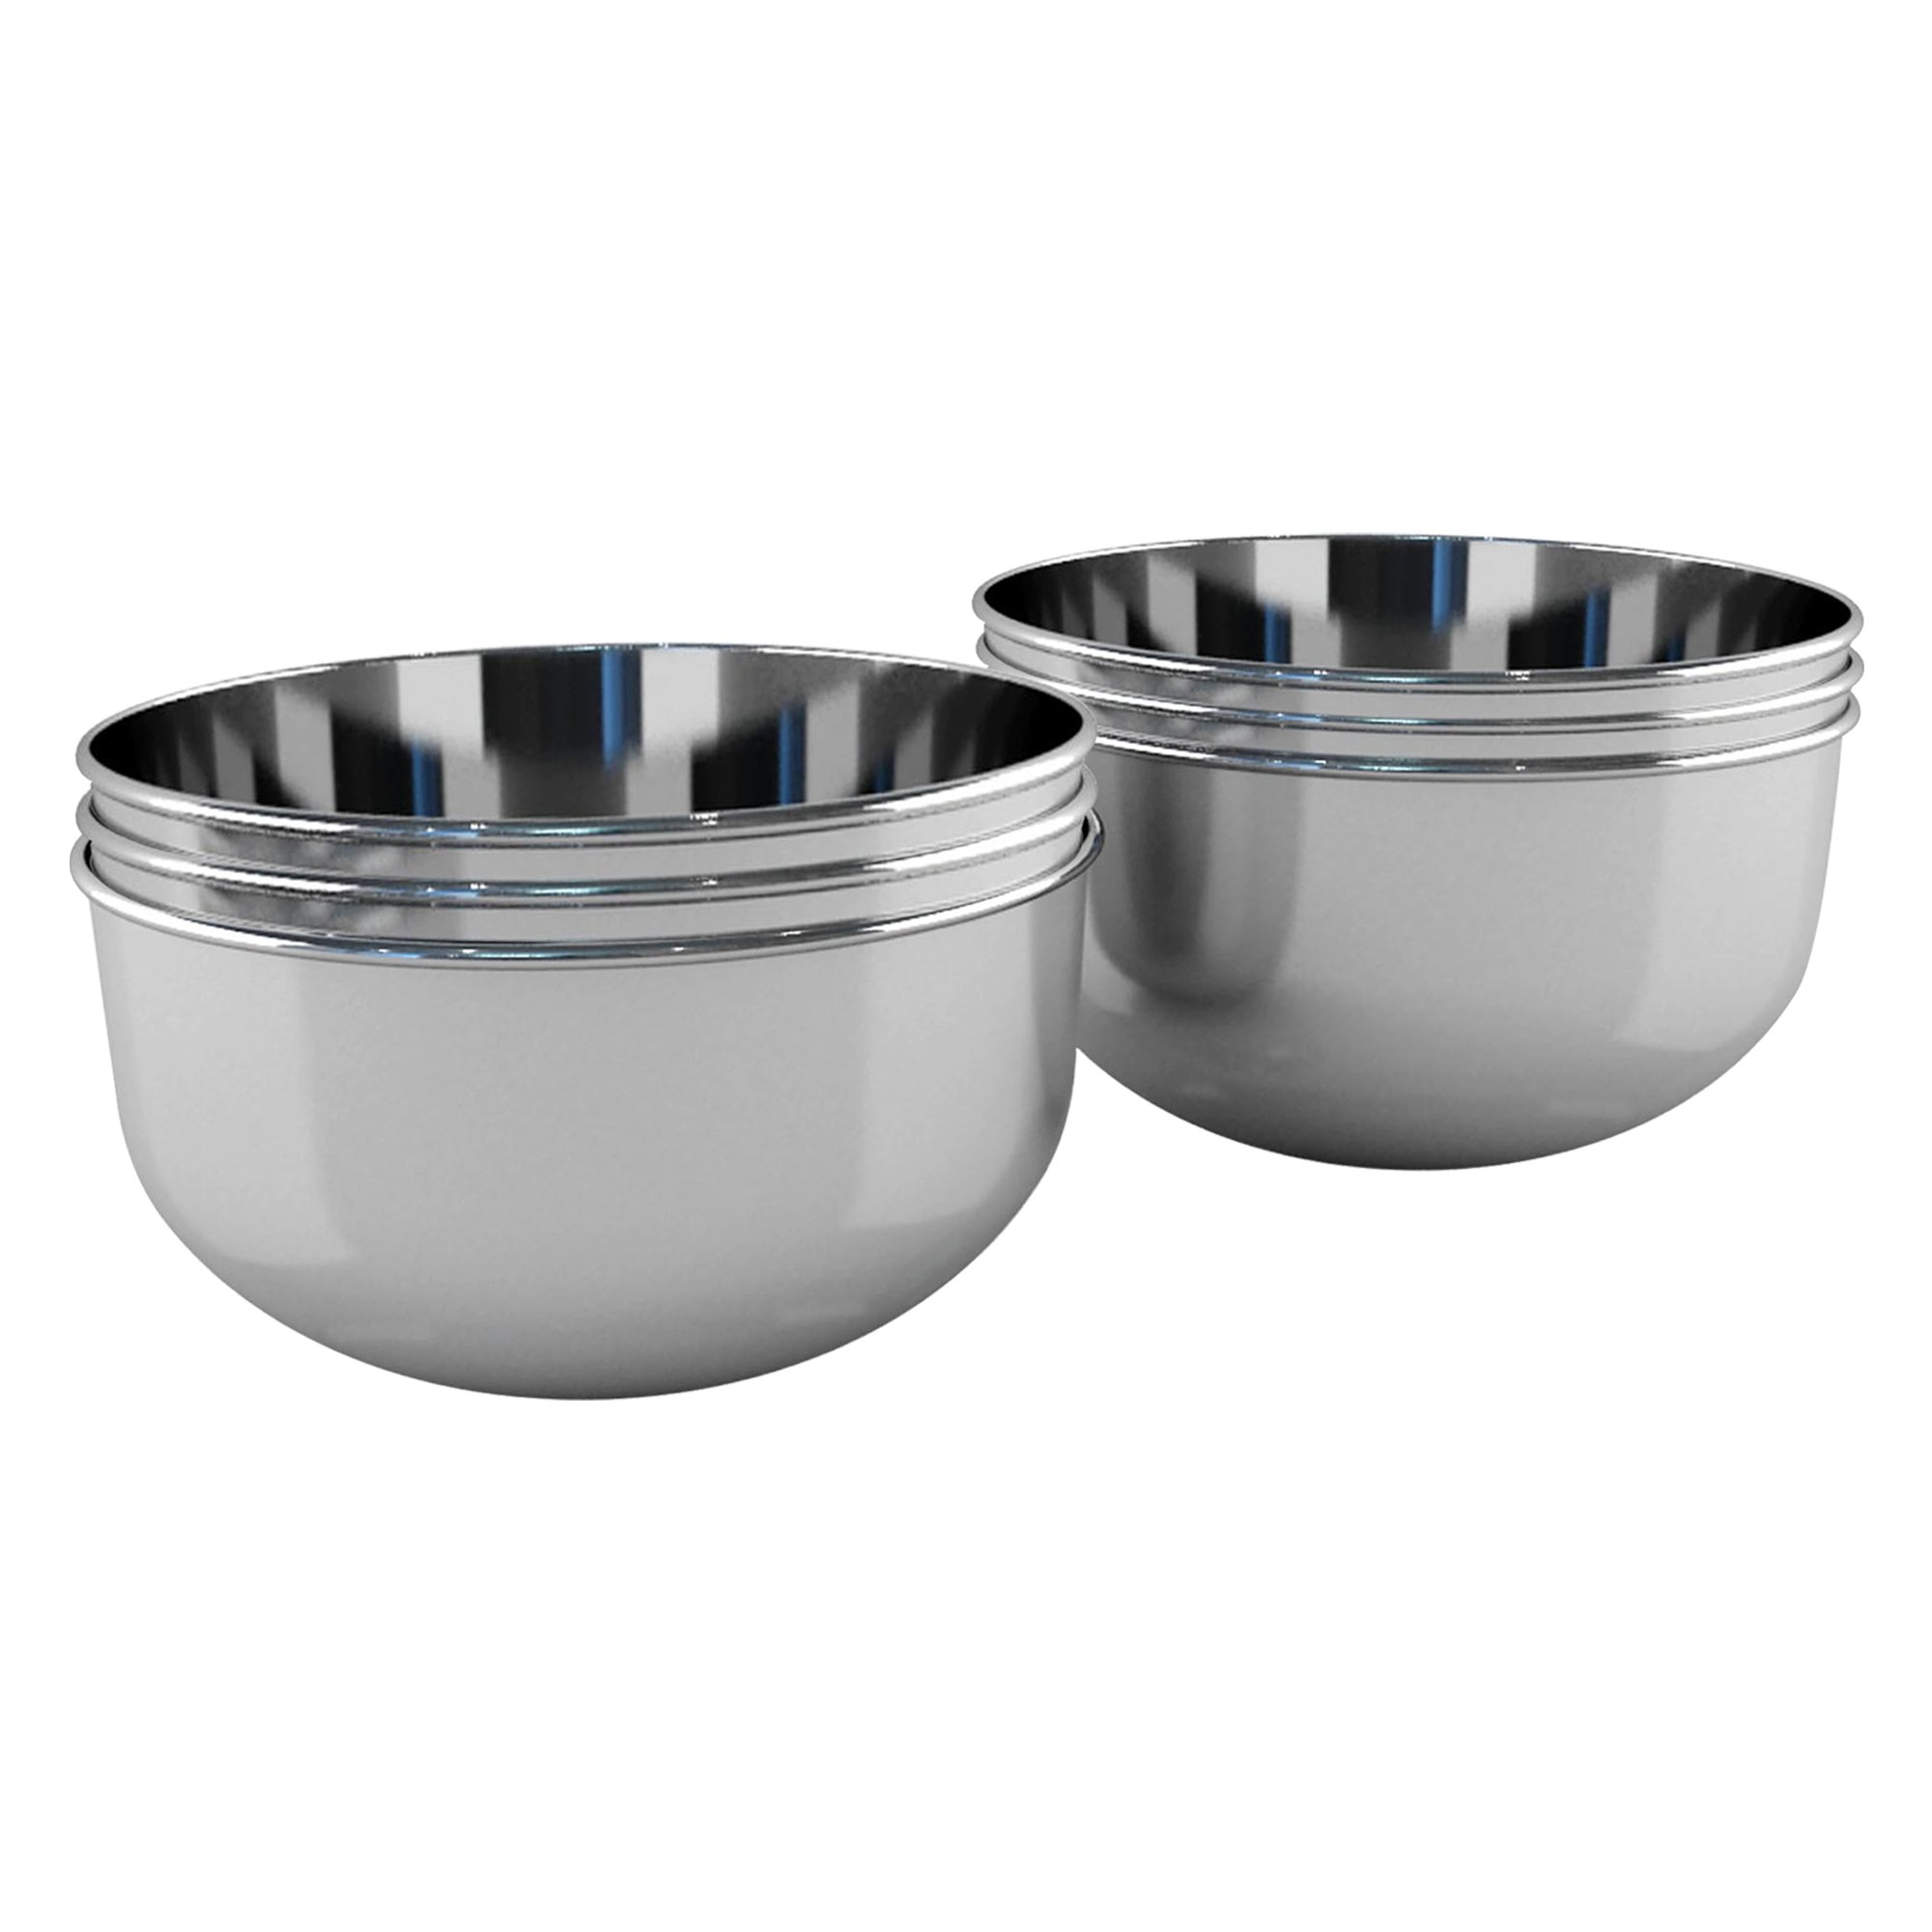 NuSteel TG-CC-6H Stainless Steel Condiment Cups  Set of 6 TTRA1441